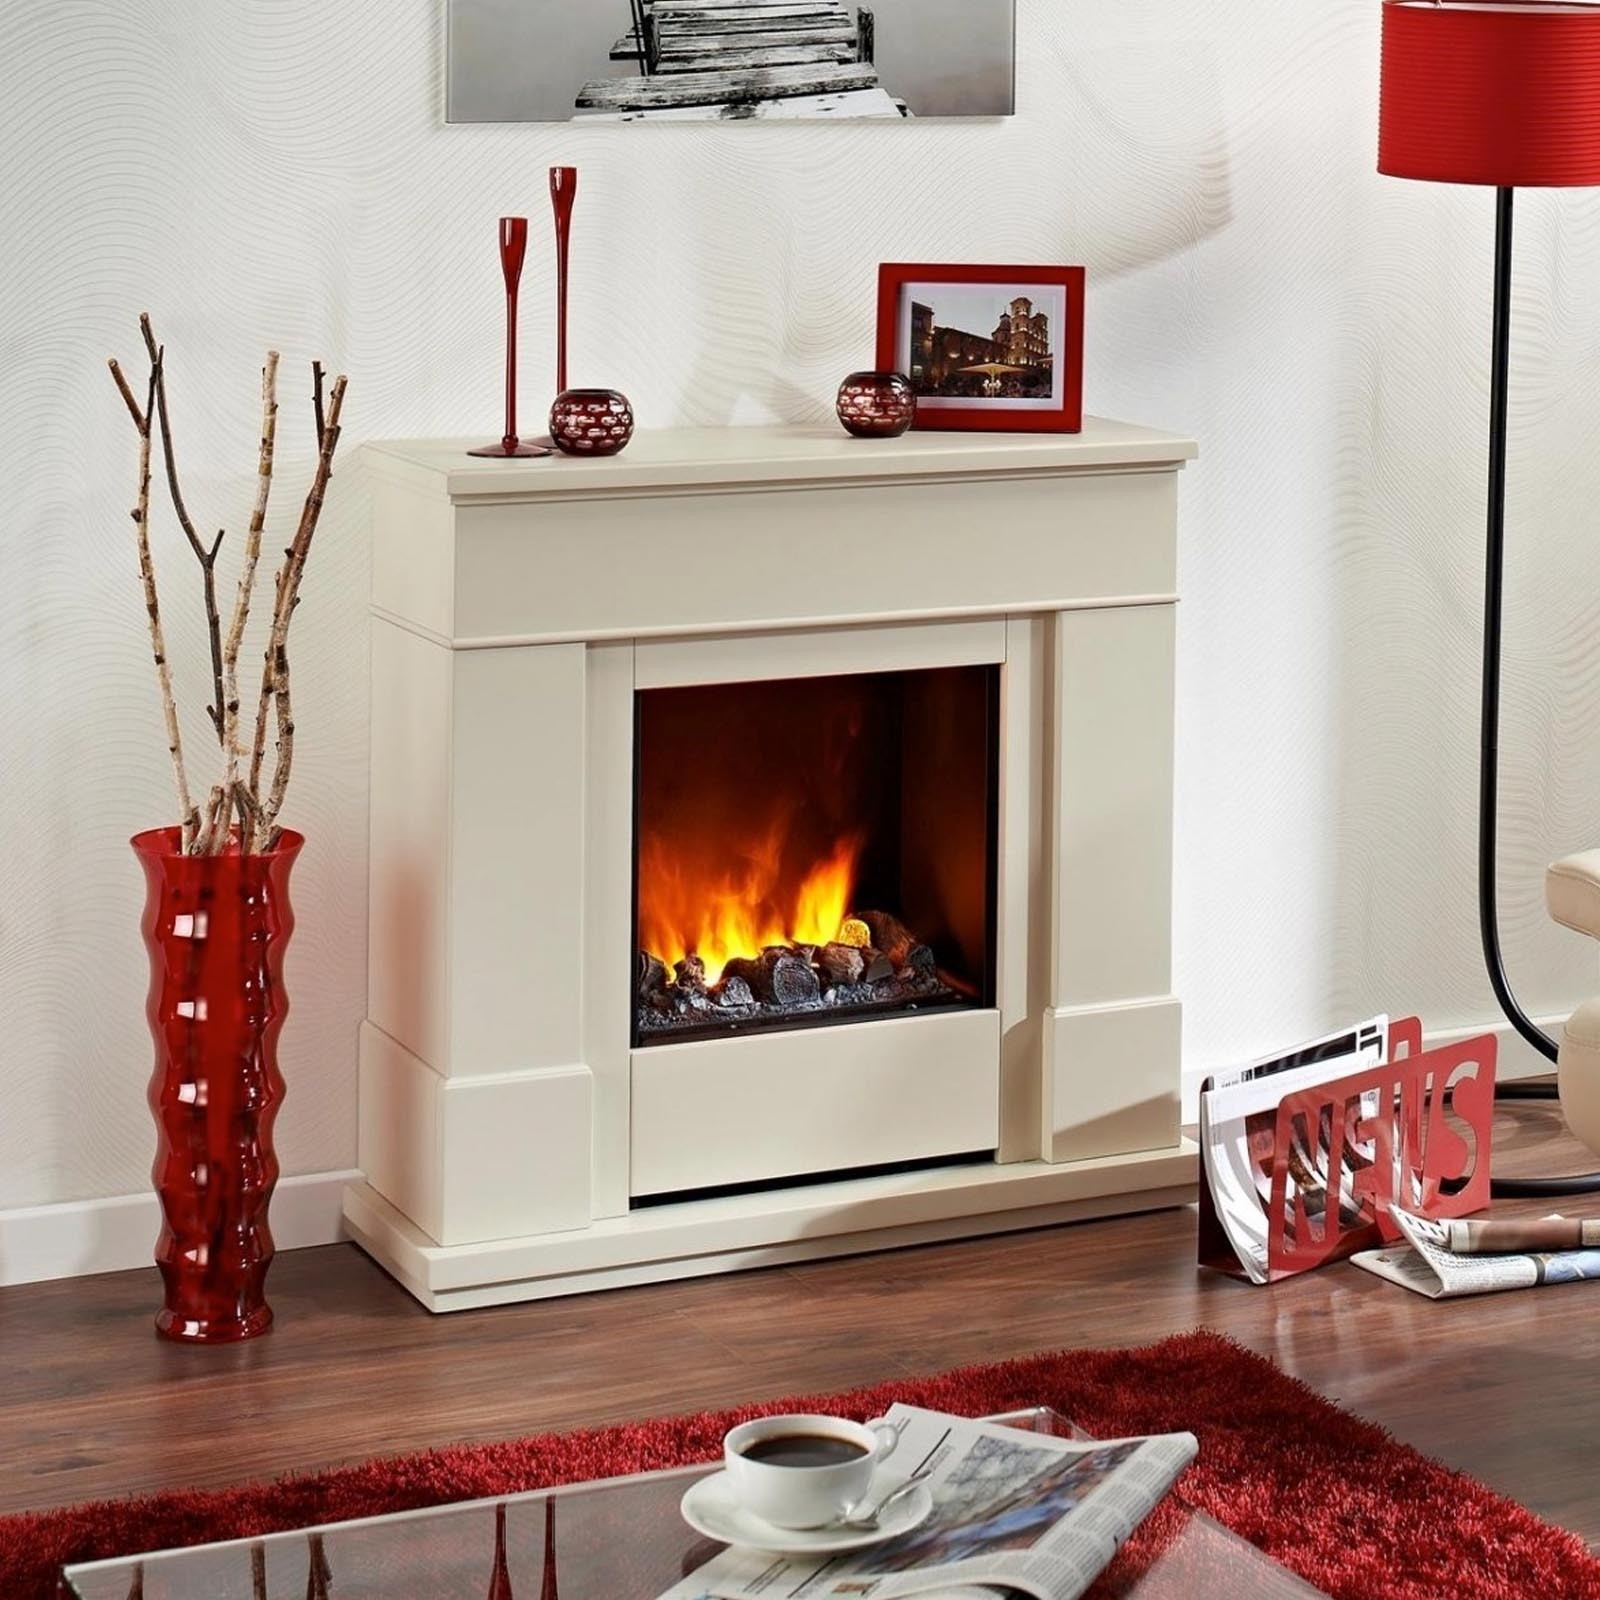 For the best prices on Dimplex Electric Fireplace Suites call us today on 01274 871010. product